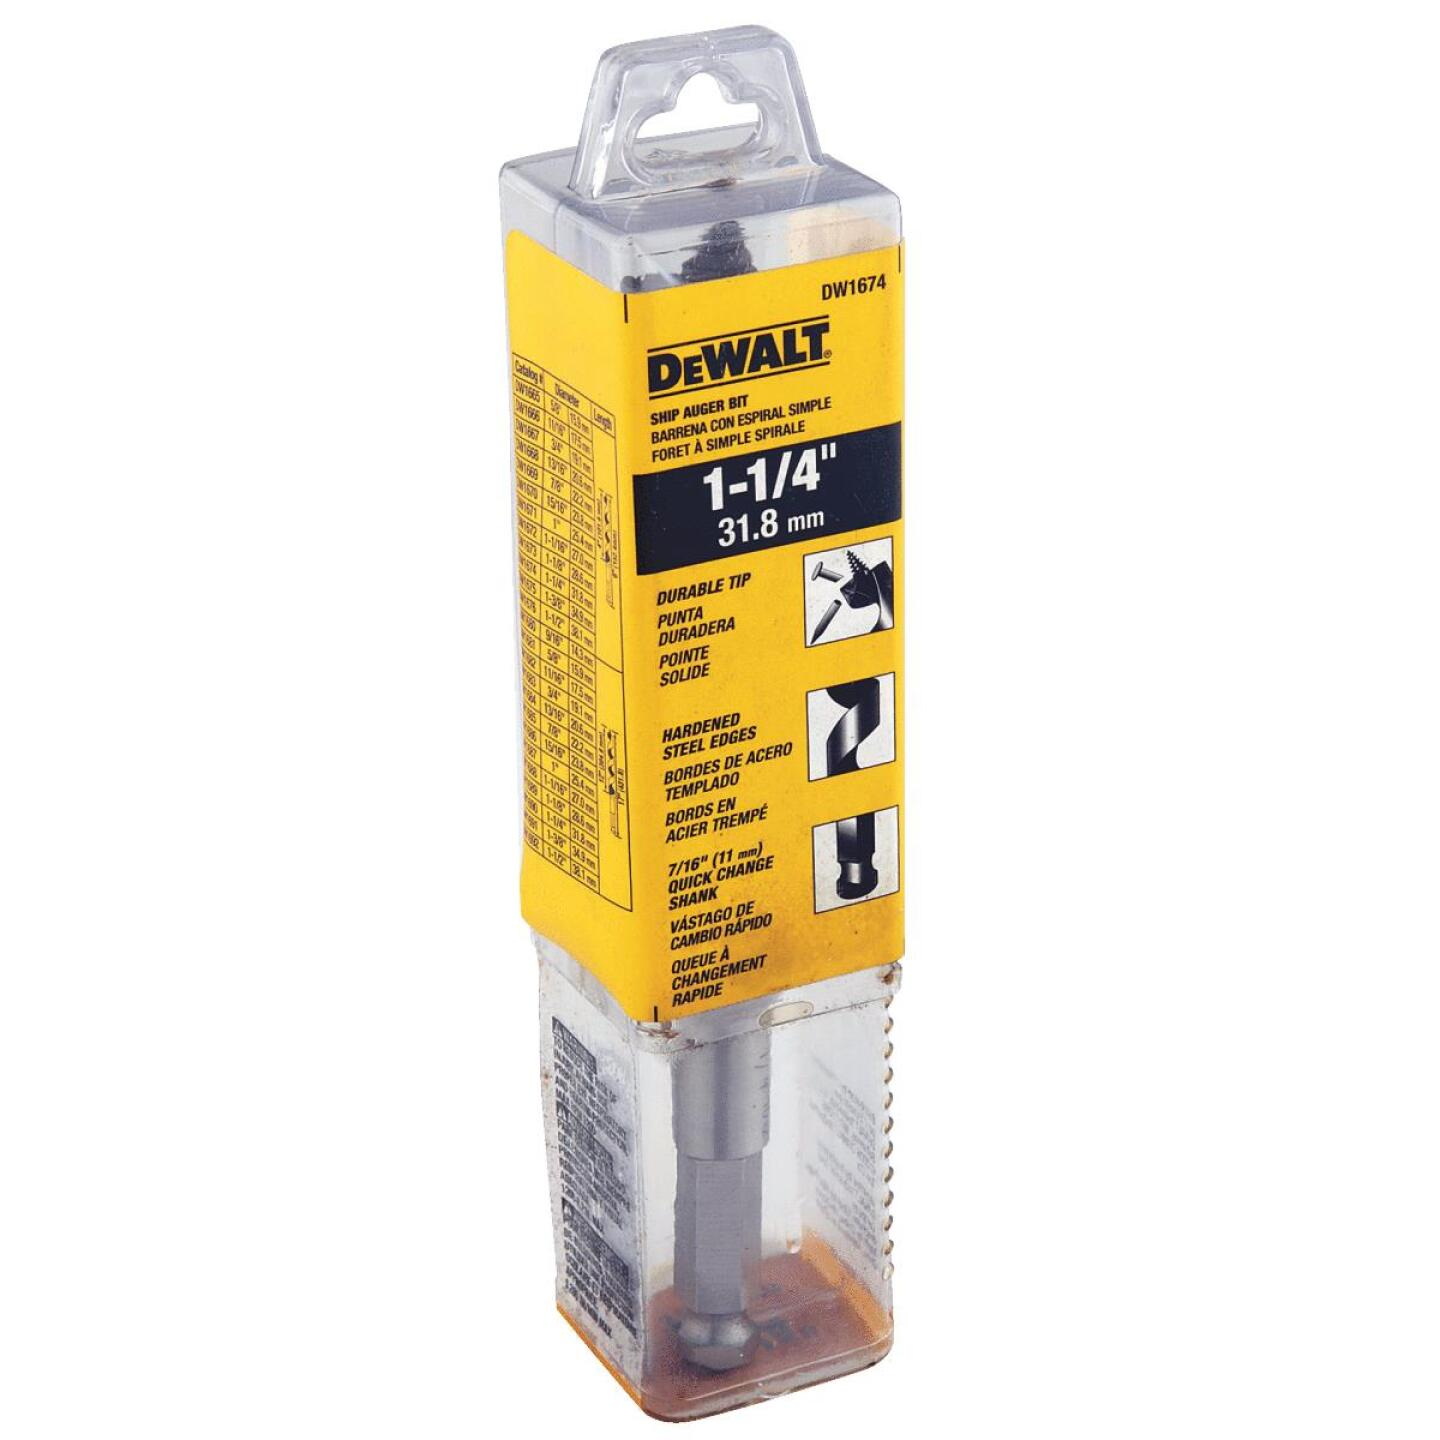 DeWalt Power Ship 1-1/4 In. x 6 In. Quick Change Auger Bit Image 2